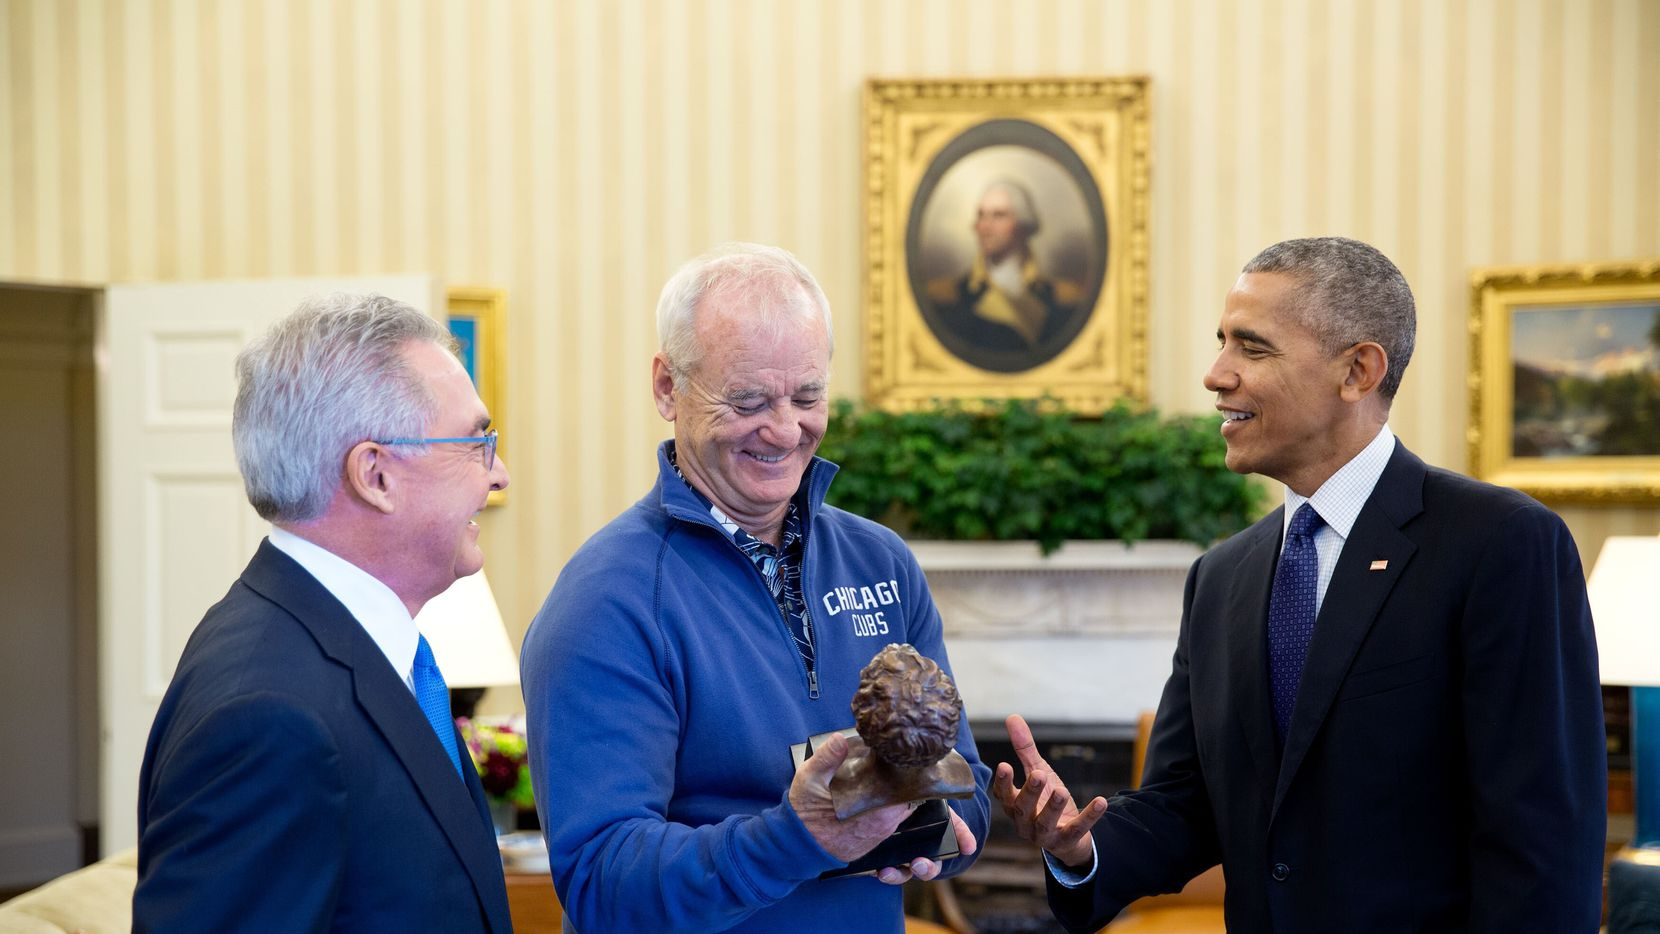 Cappy McGarr, Bill Murray and President Barack Obama share a laugh in the Oval Office.